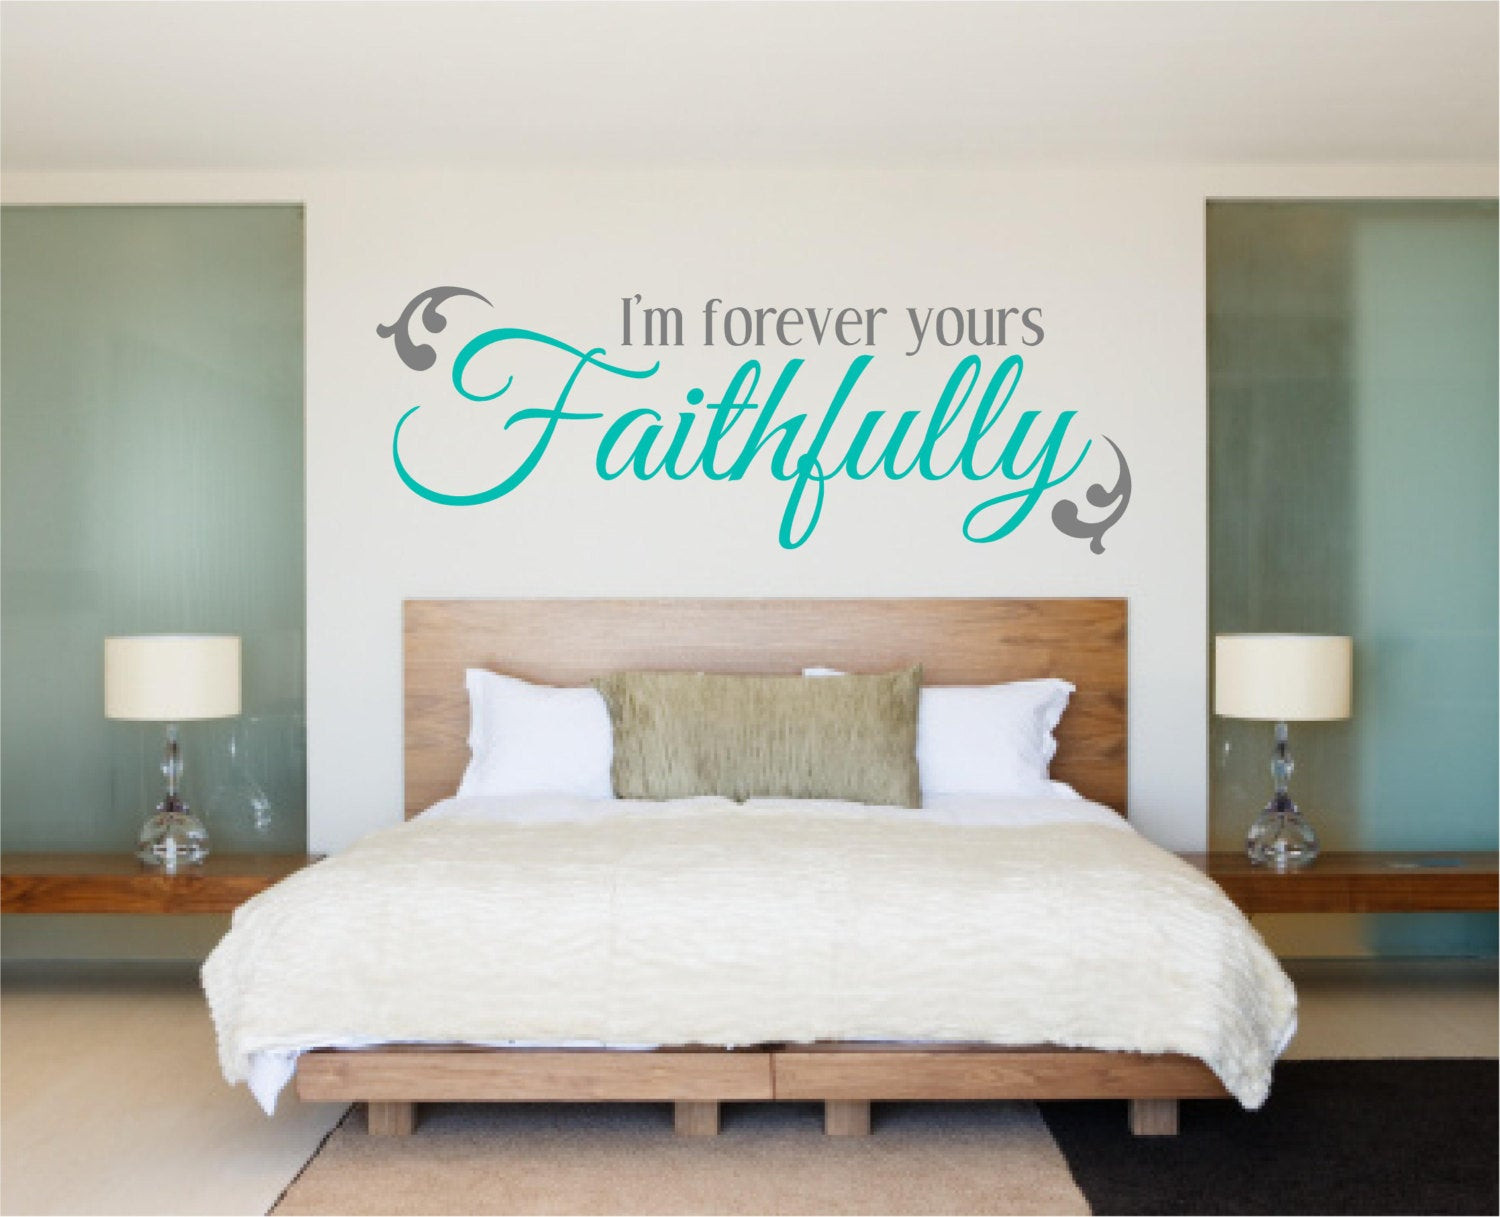 Best ideas about Wall Decals For Bedroom . Save or Pin Bedroom Decal Bedroom Wall Decal Love Decal I m Forever Now.